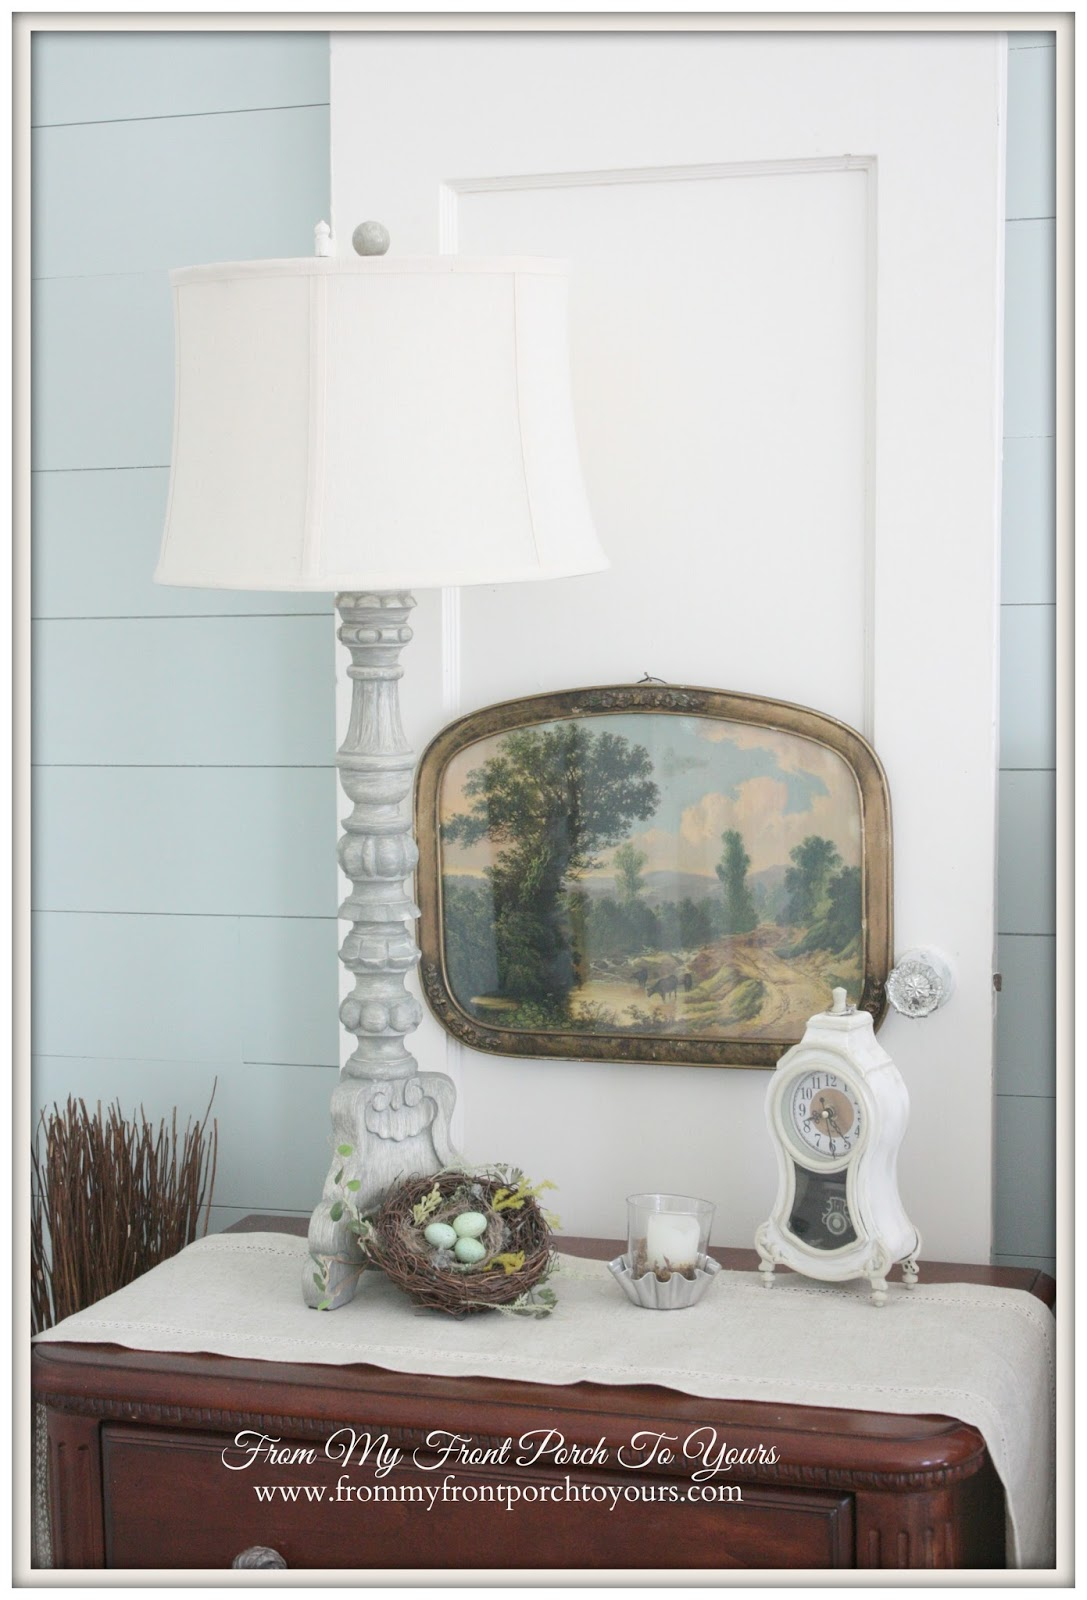 From My Front Porch To Yours- French Farmhouse Bedroom HomeGoods Lamp